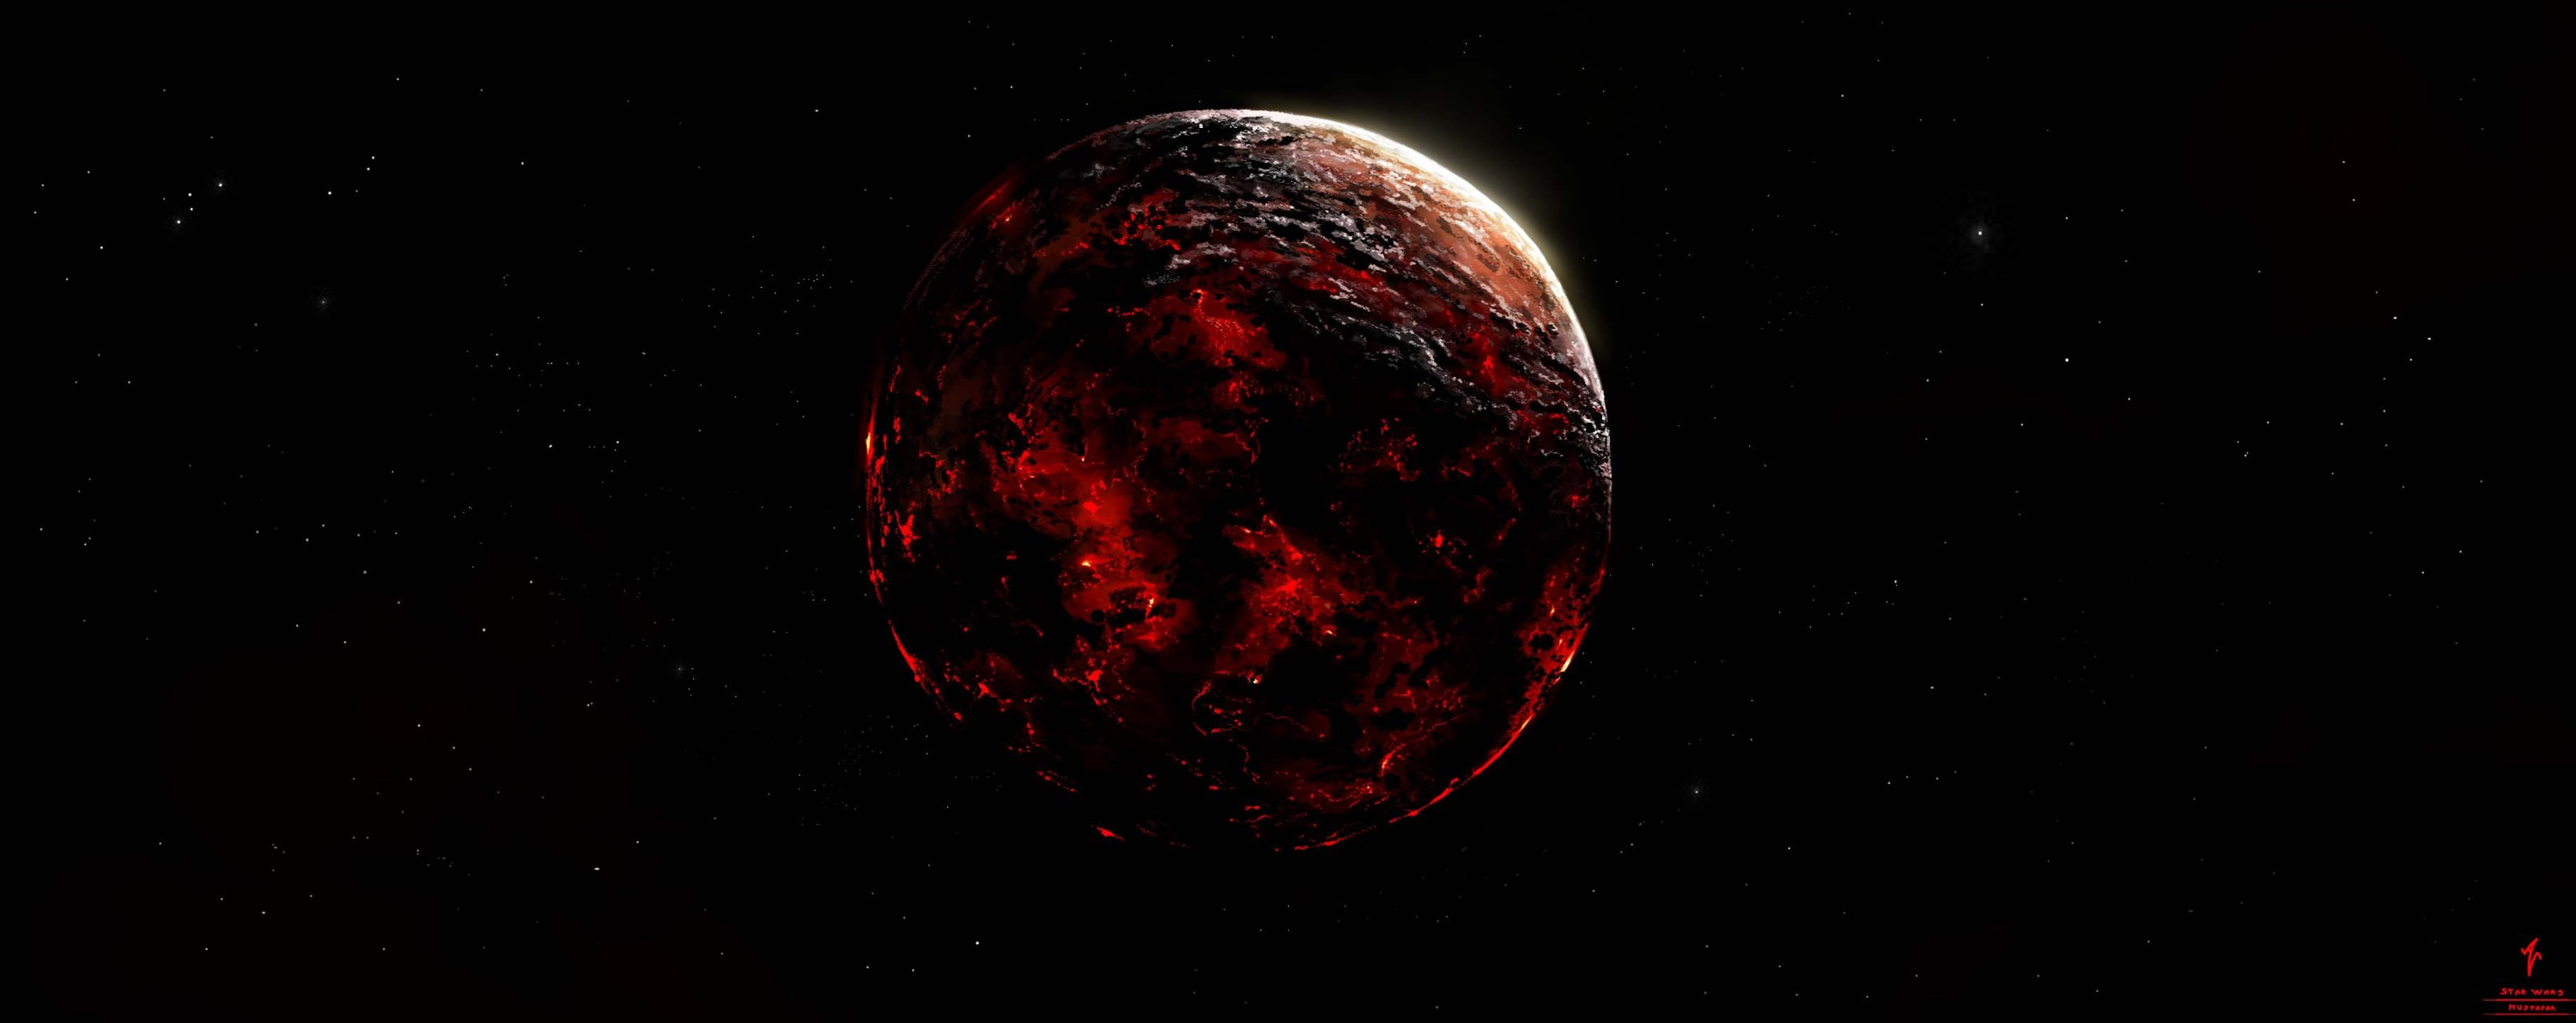 http://s.fishki.net/upload/post/201506/24/1575746/3_art-alberto-vangelista-space-planet-space-lava-fire-destruction.jpg